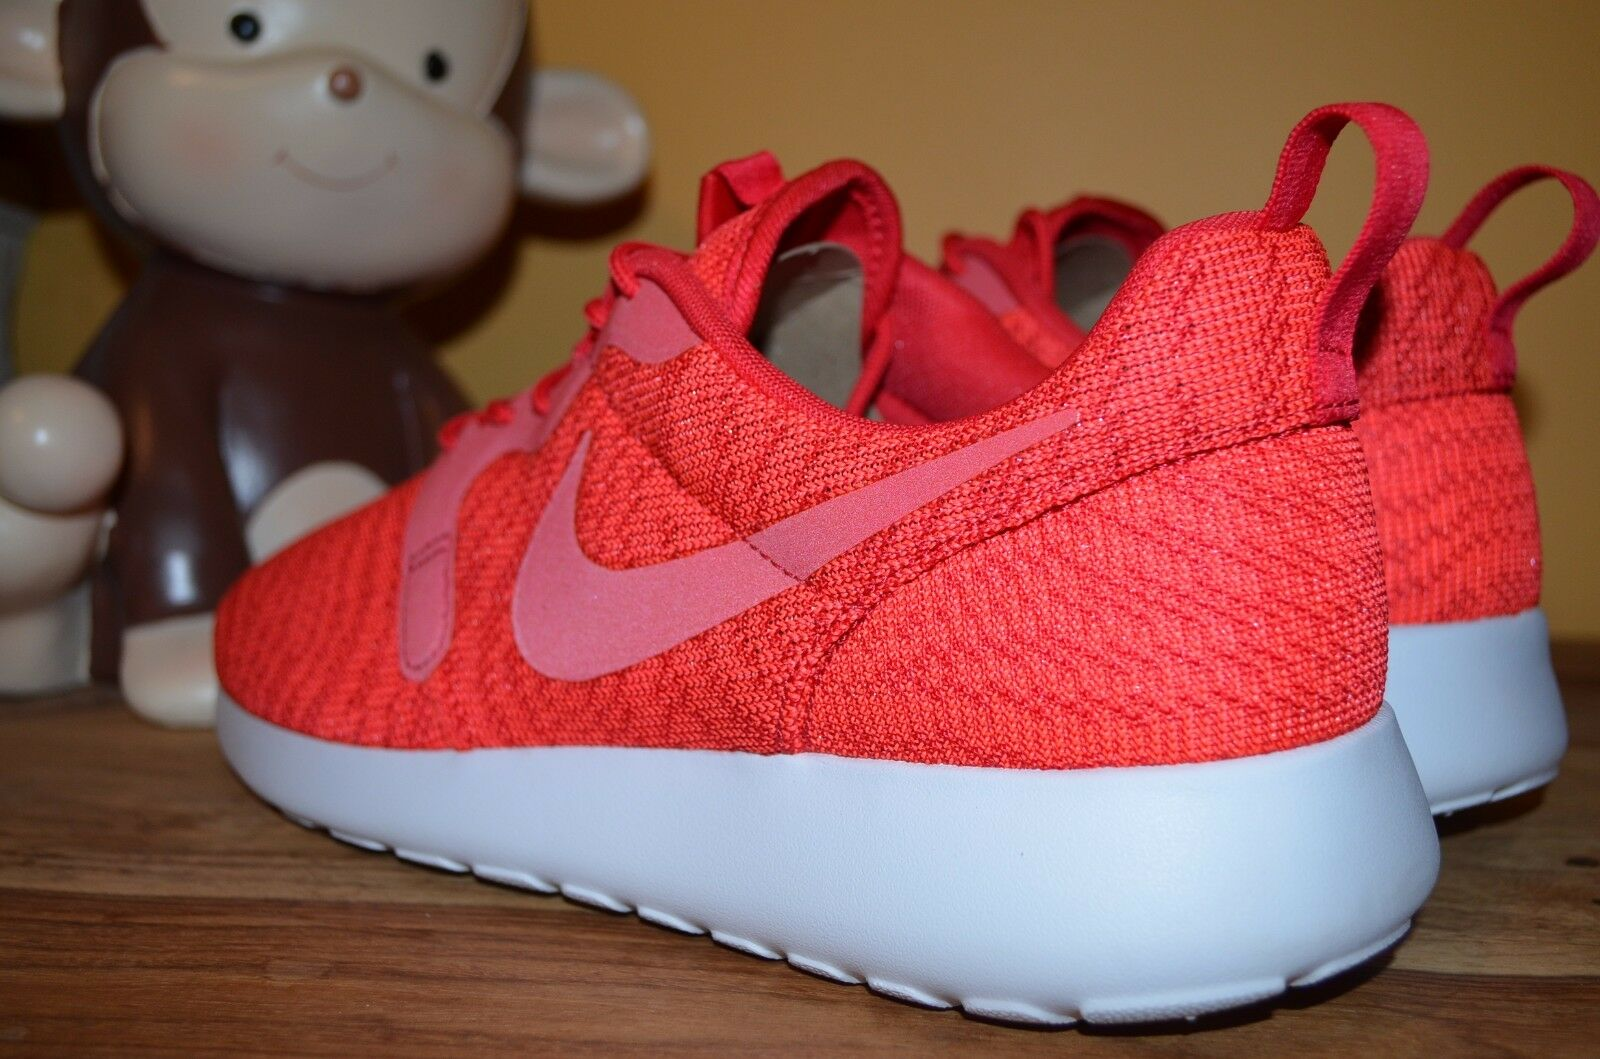 cf4d8008d892e ... cheap chic new nike roshe one kjcrd running shoes sz 9 9.5 hyper red  white 777429